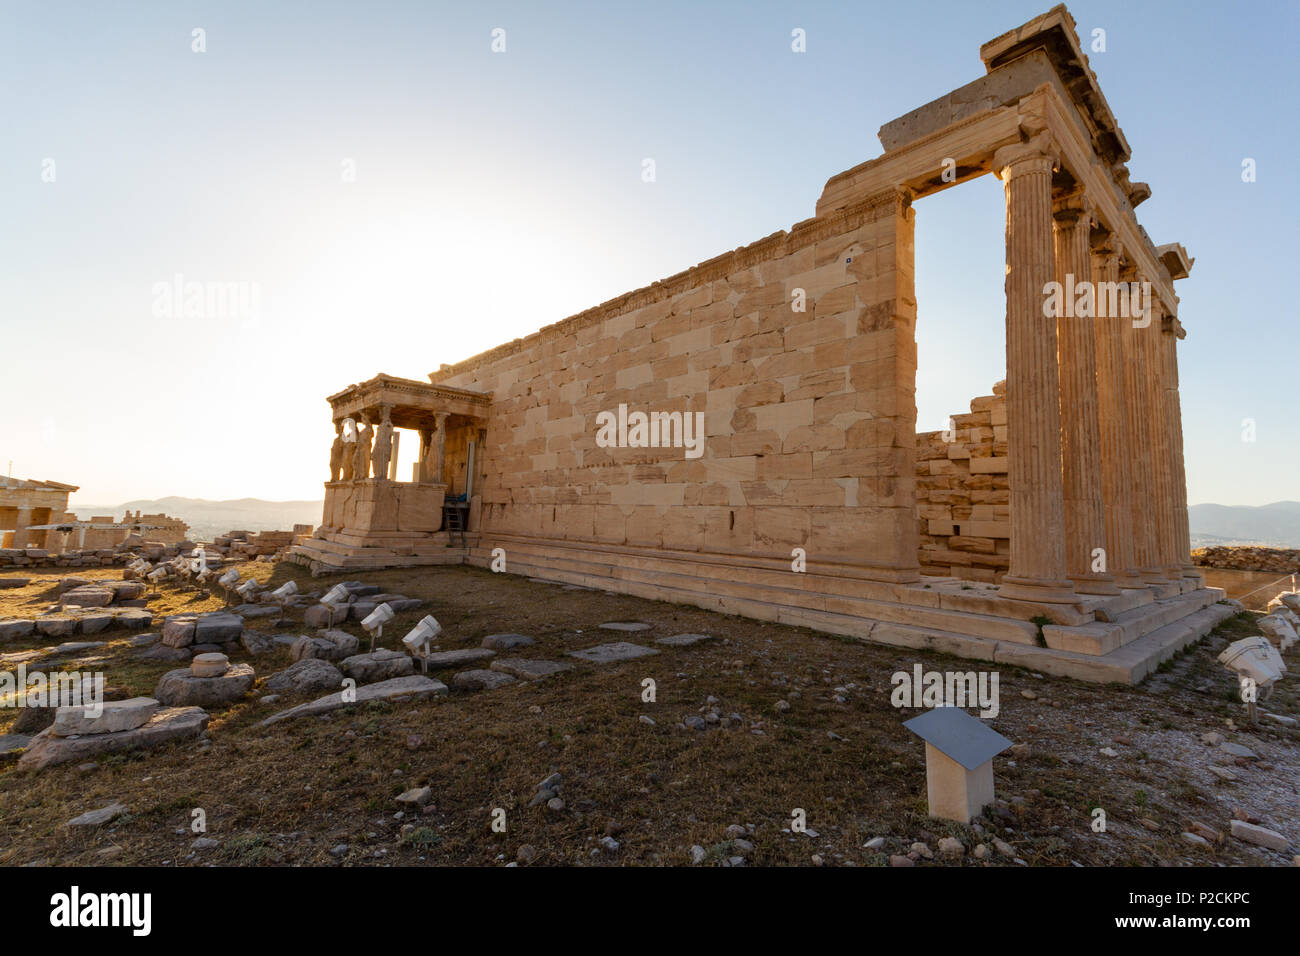 Erechtheum temple ruins on the Acropolis in Athens, Greece on an June afternoon- closer view - Stock Image